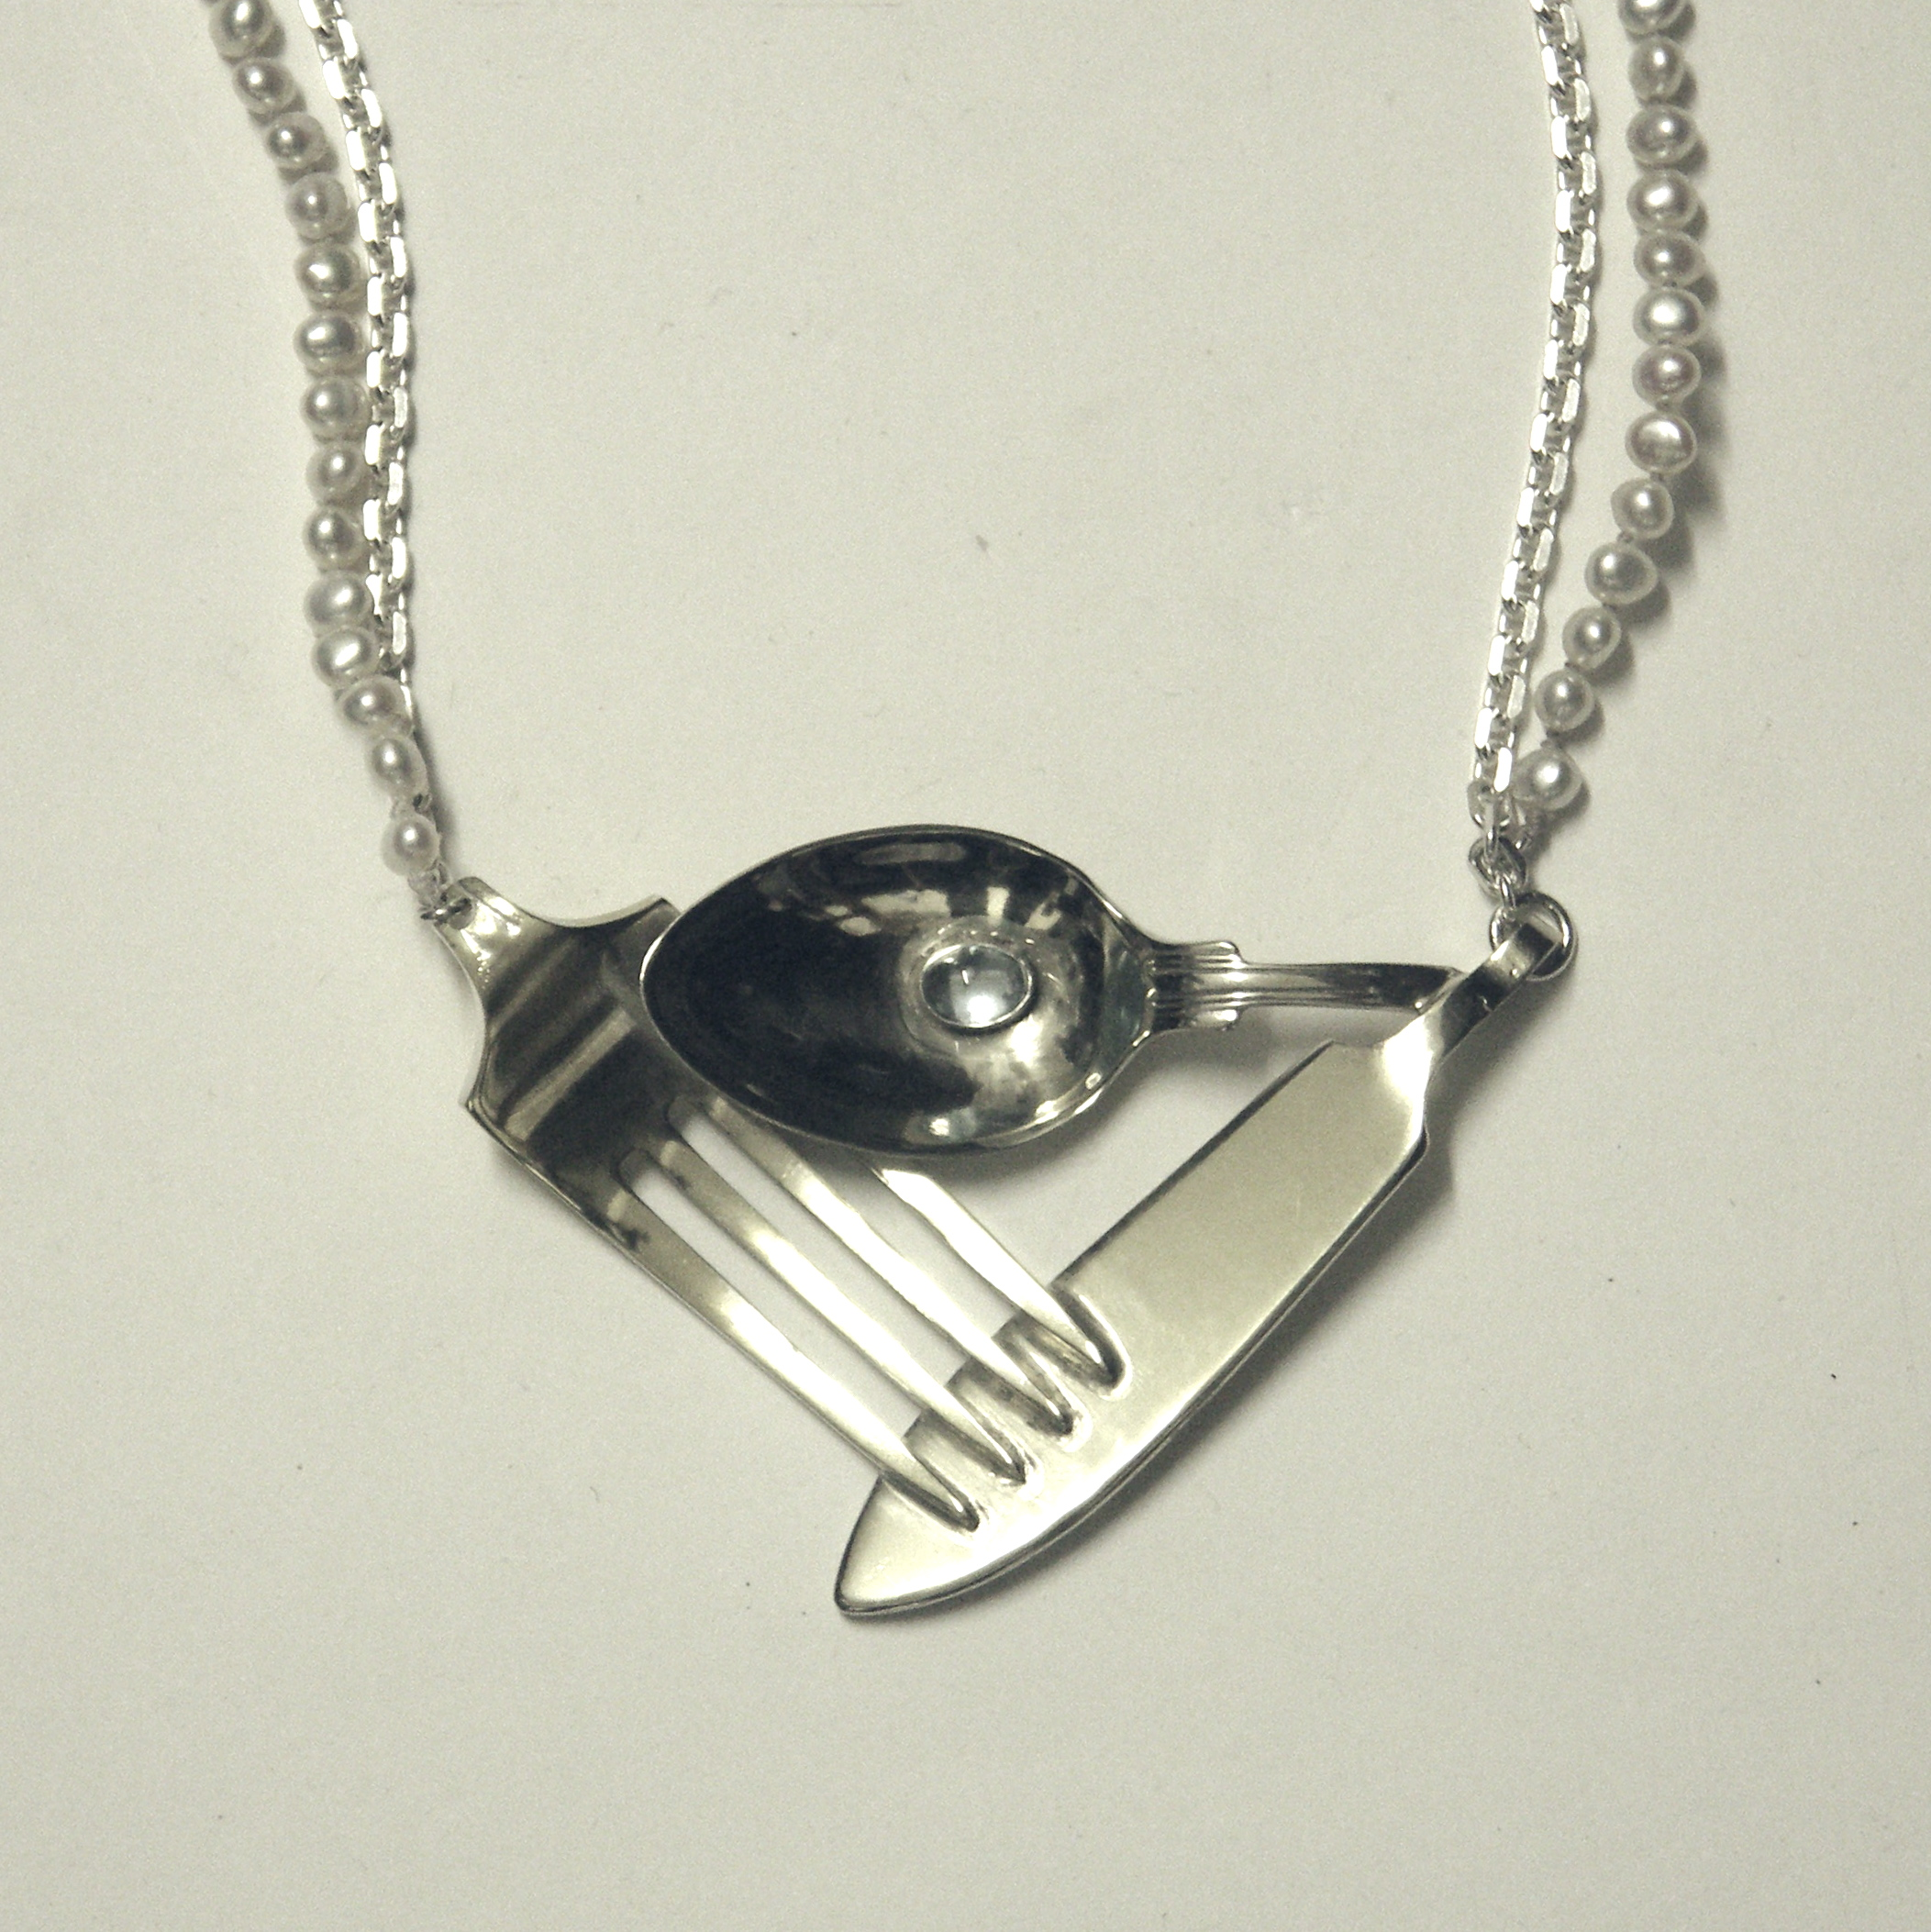 CTPN-Cutlery, pearl and topaz necklace